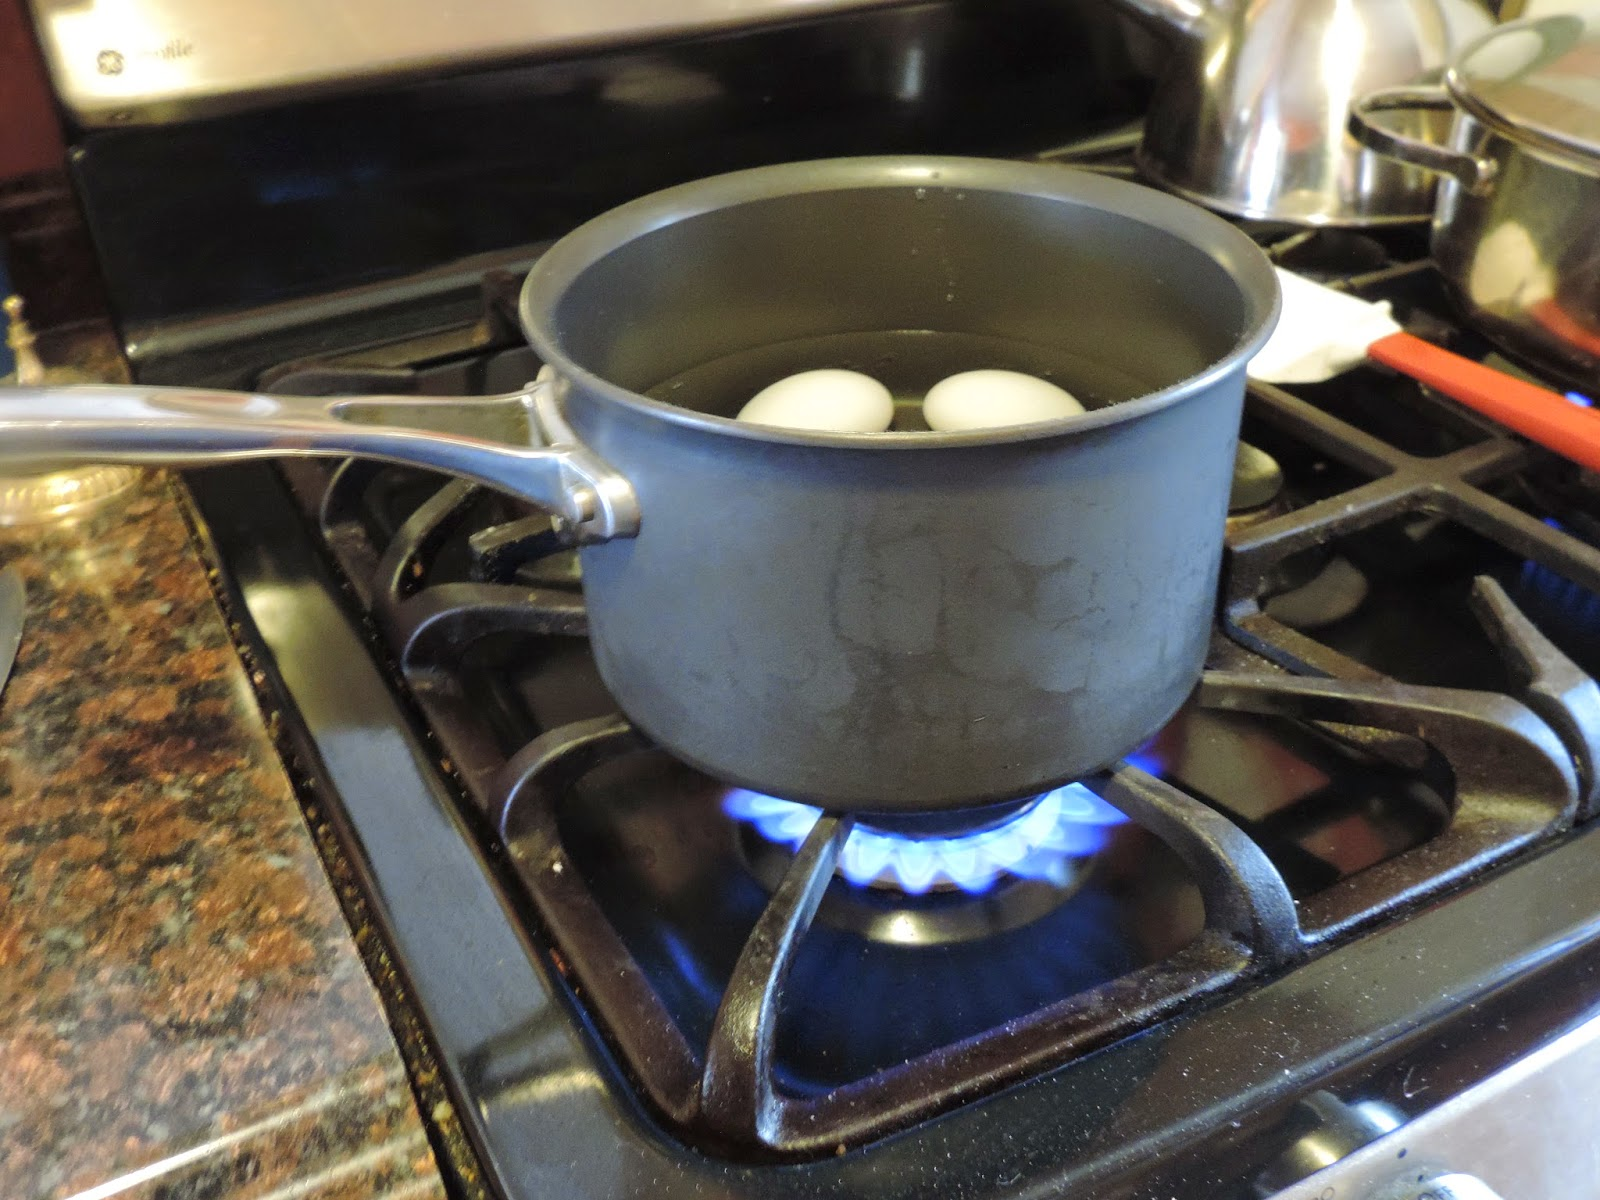 The pot of eggs and water being placed over medium/high heat on the stove.